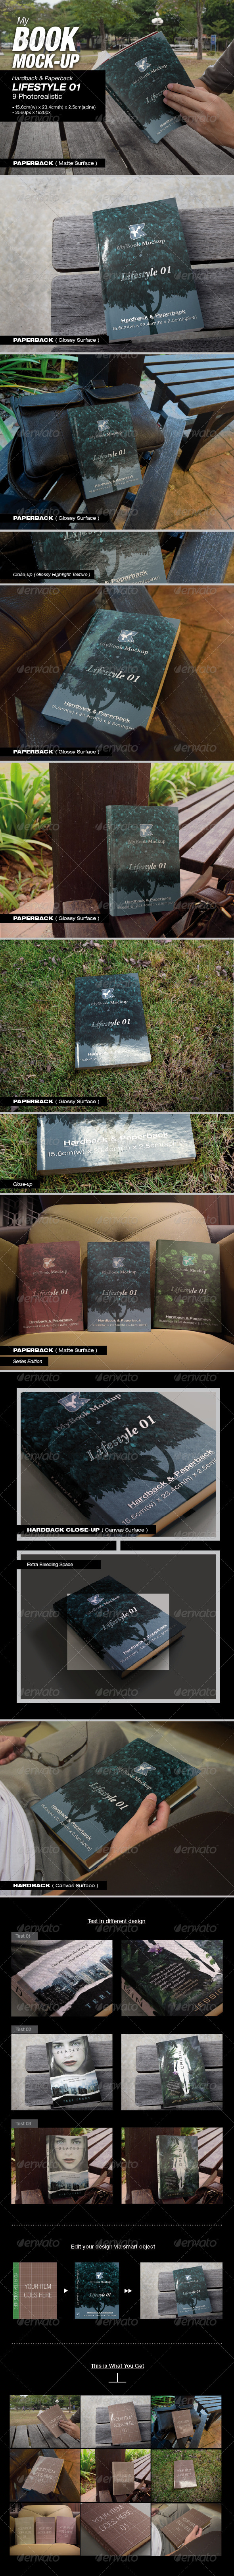 GraphicRiver MyBook Mock-up Lifestyle 01 8511725